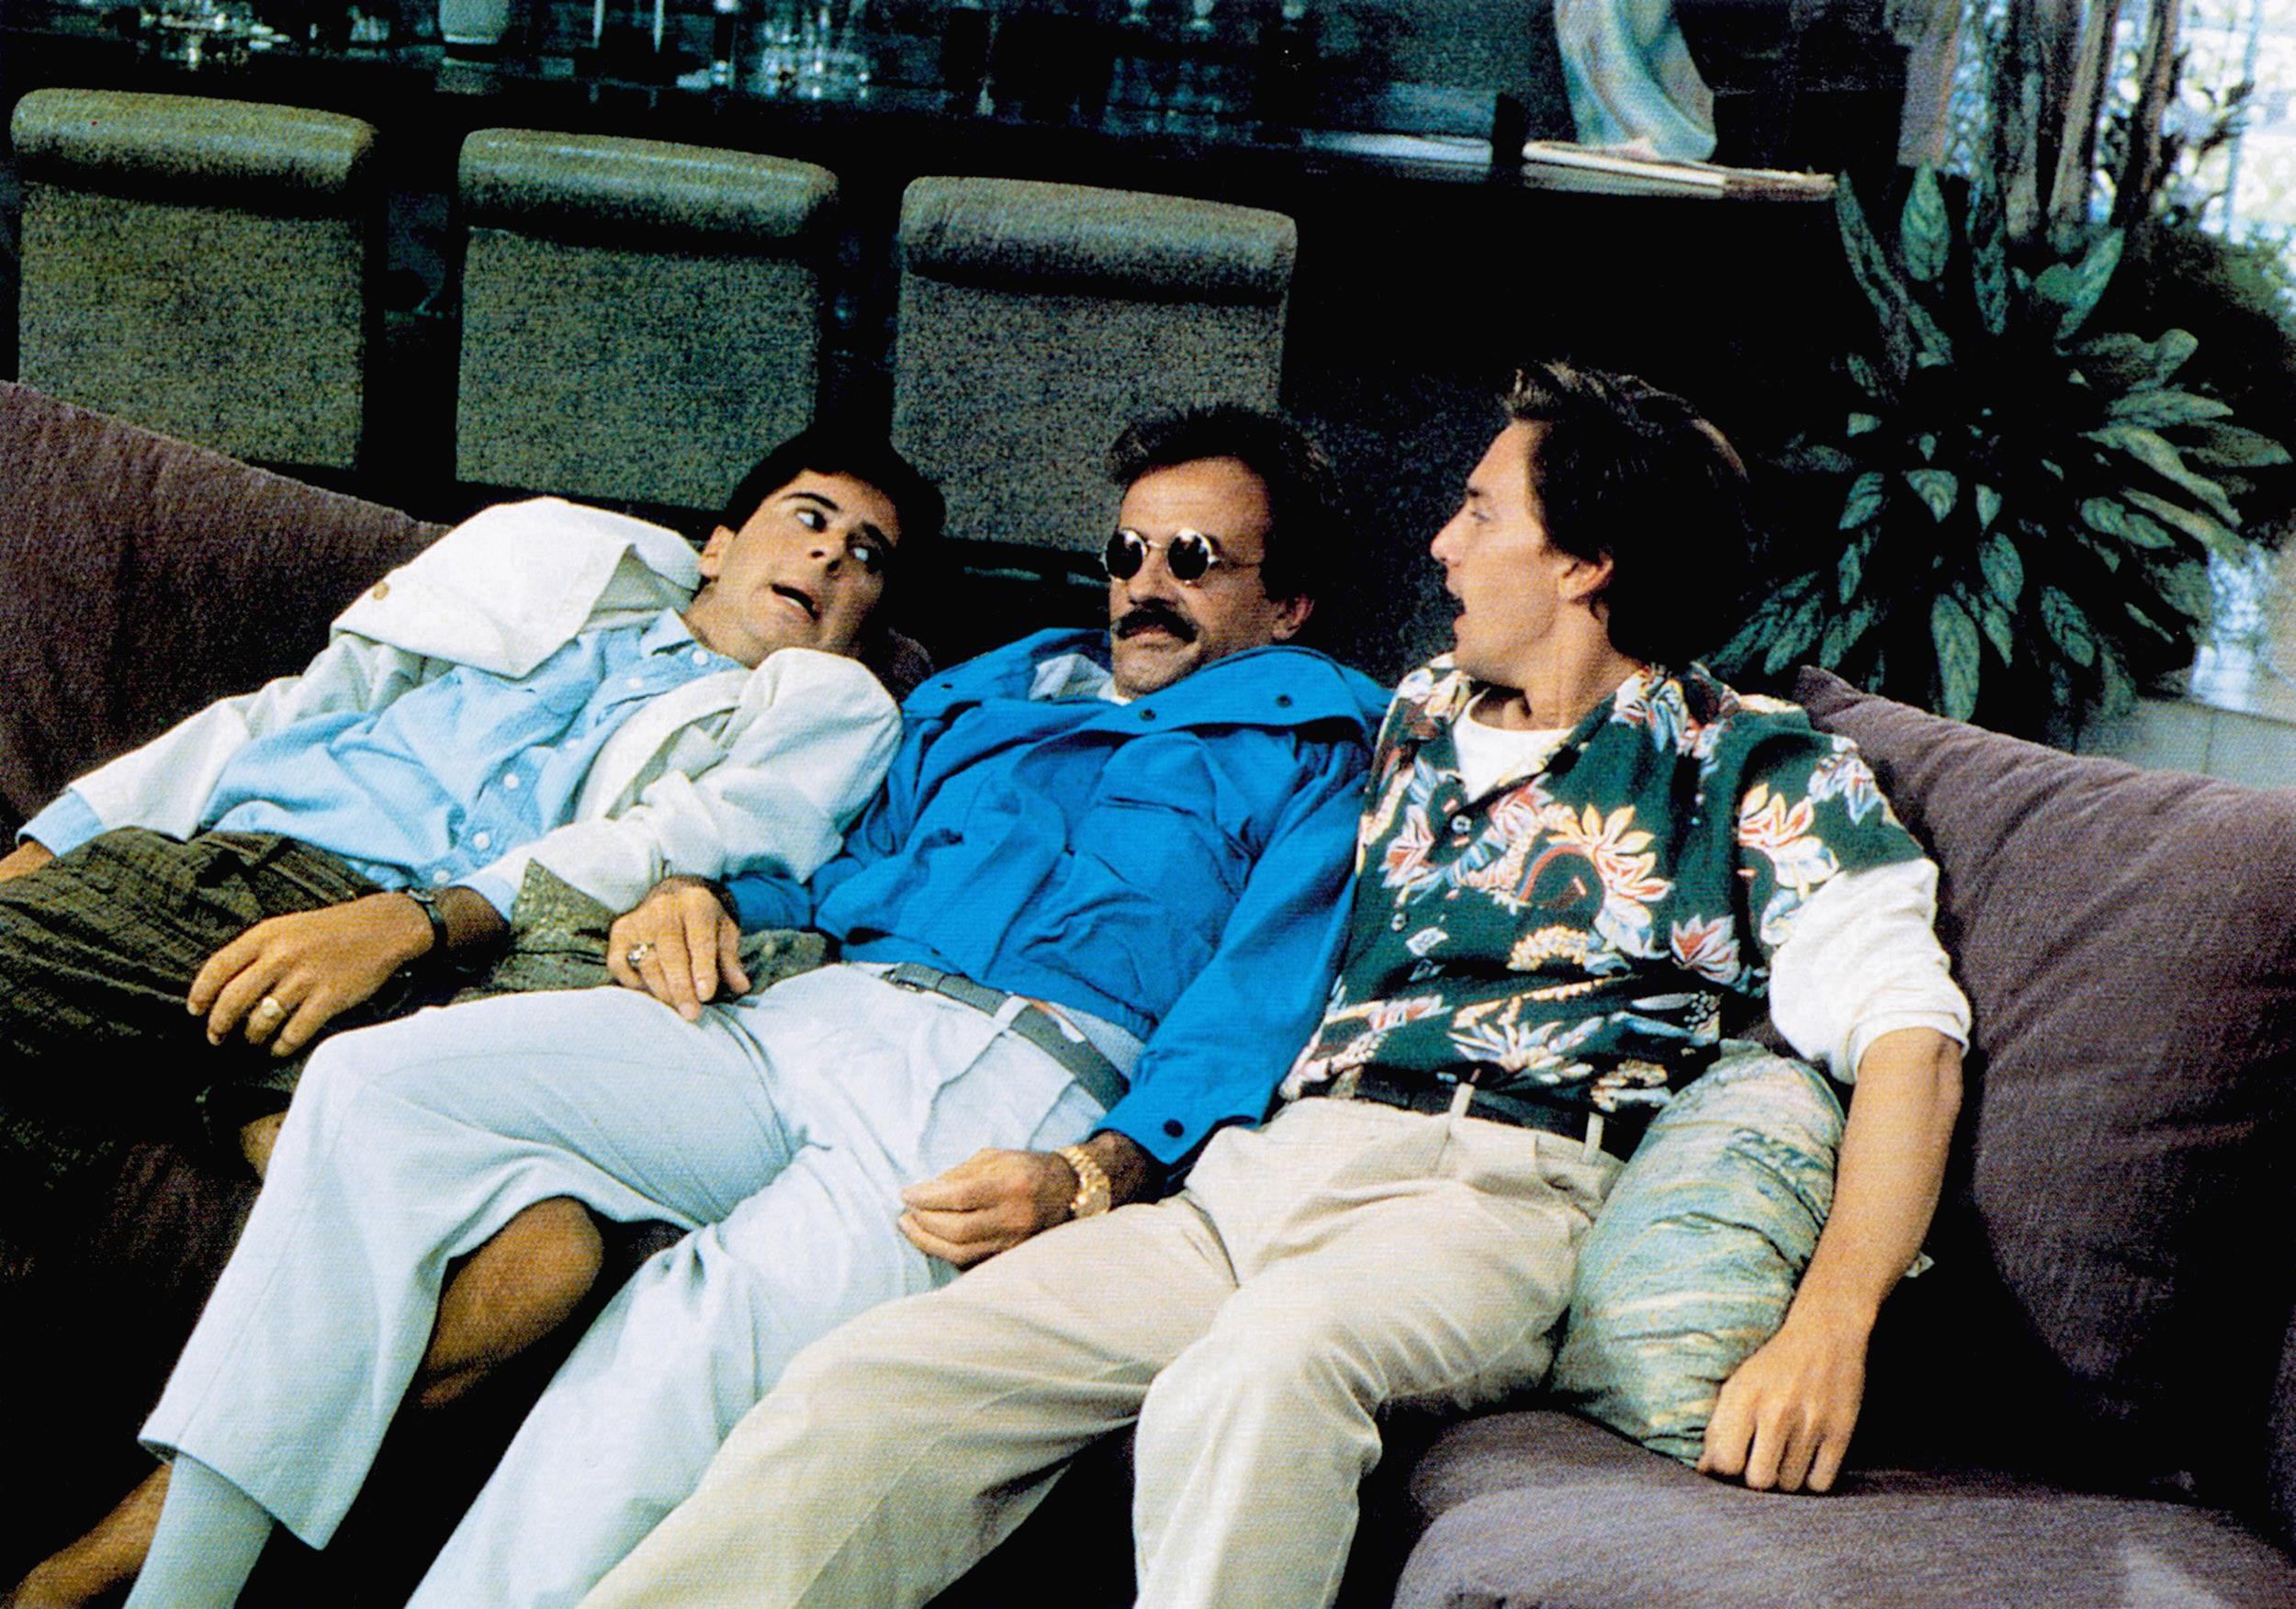 Summer of '89: Weekend at Bernie's